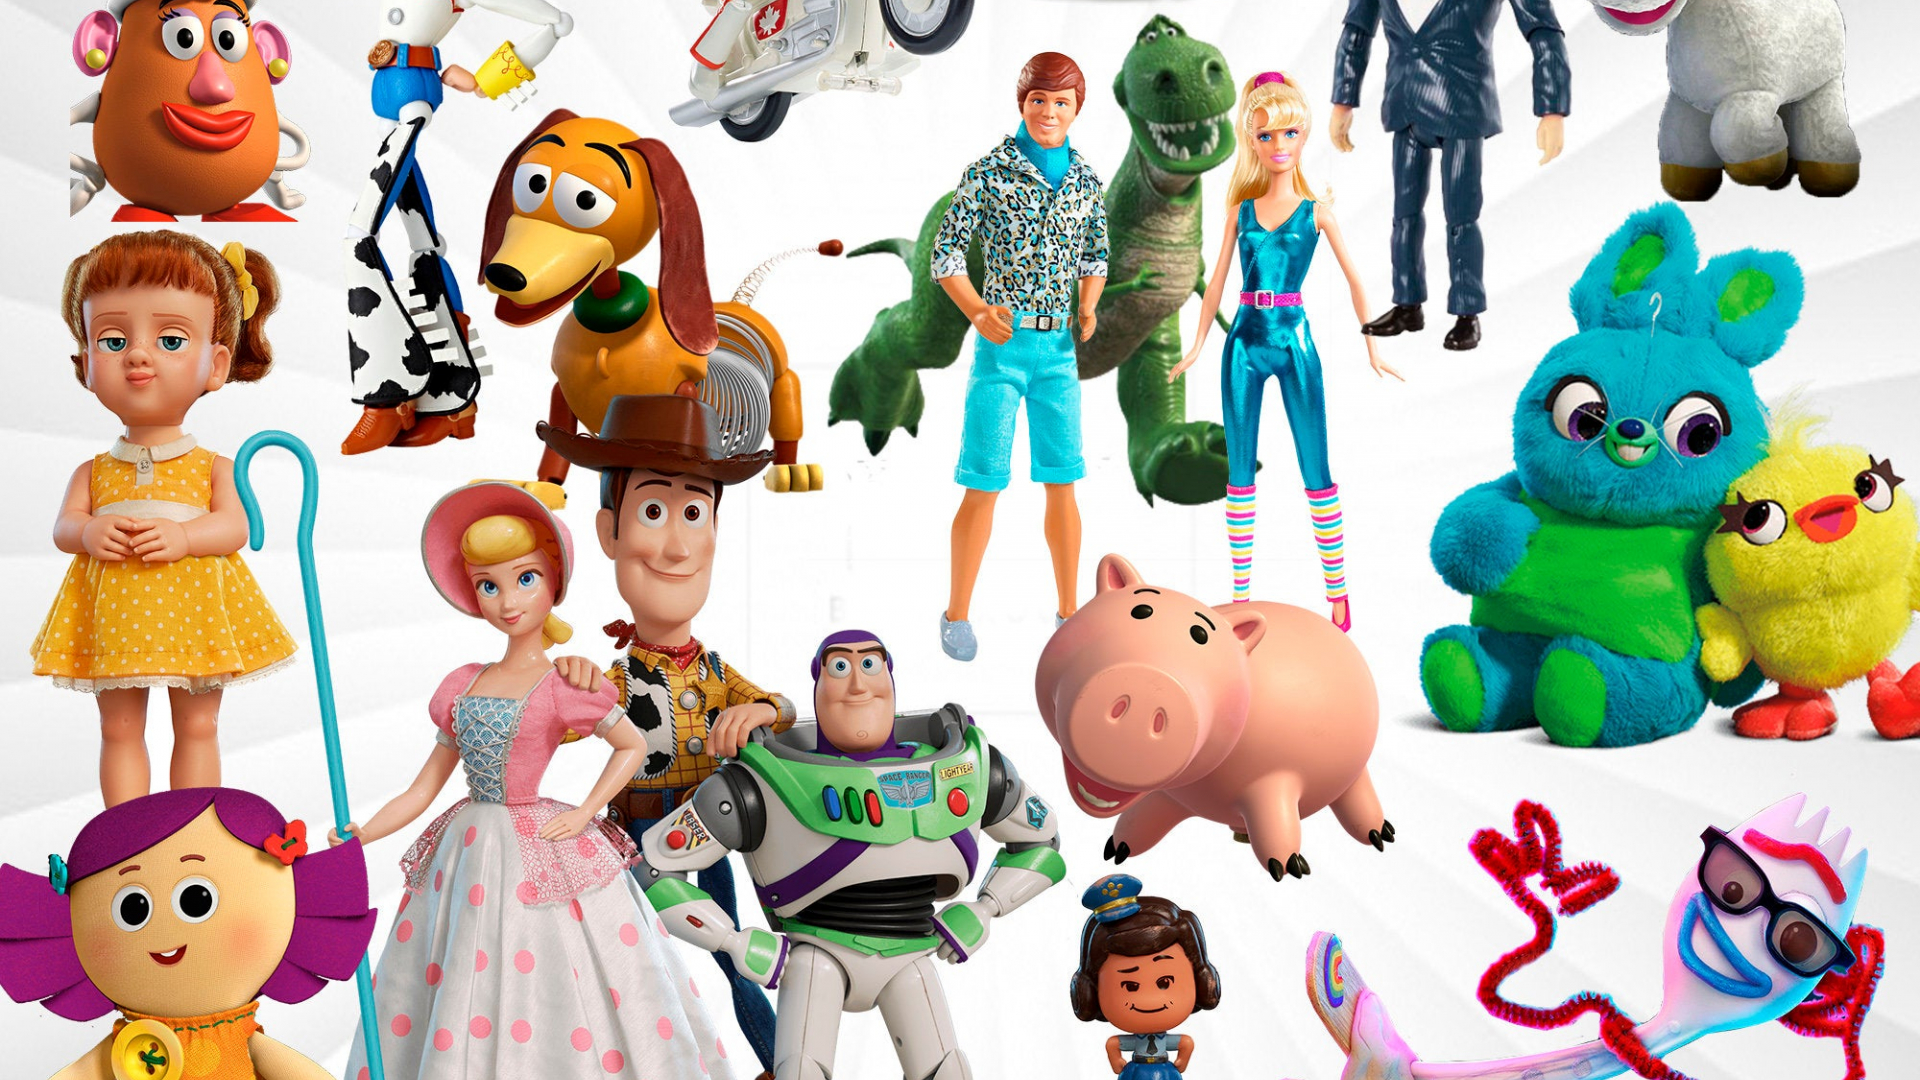 Free Download Toy Story 4 Clipart Png With Transparent